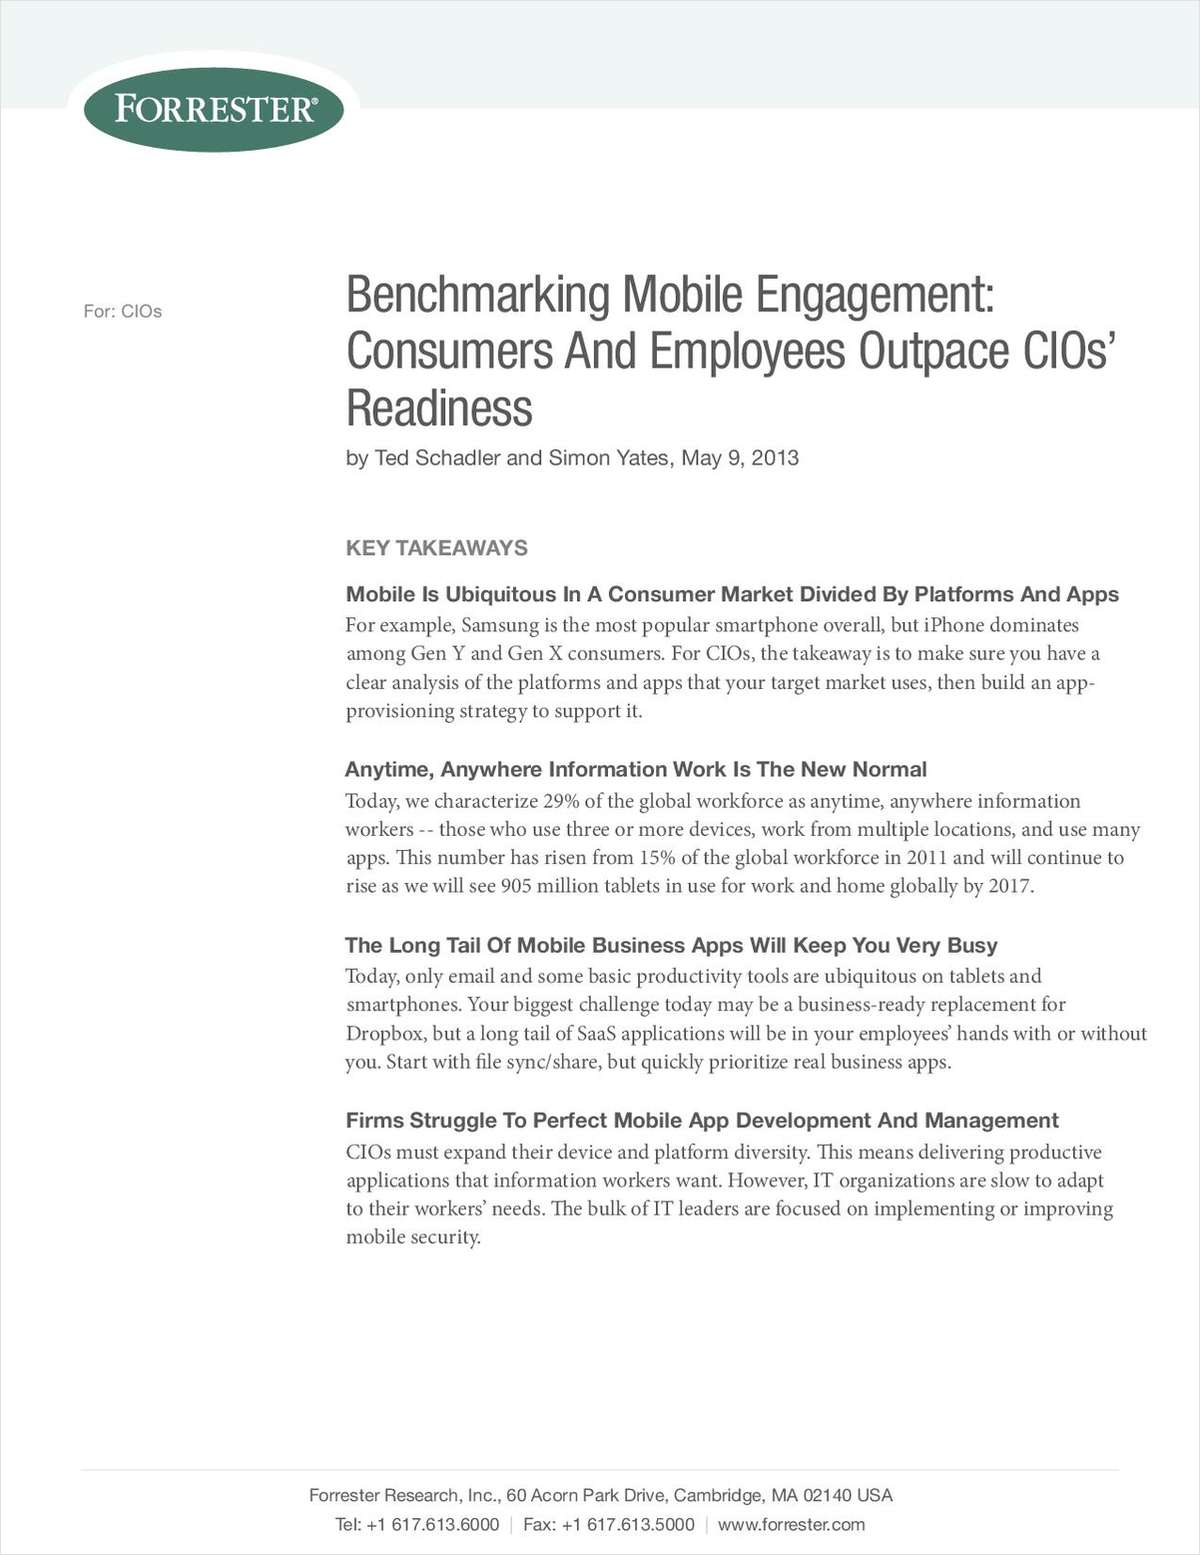 Benchmarking Mobile Engagement: Consumers and Employees Outpace CIO's Readiness